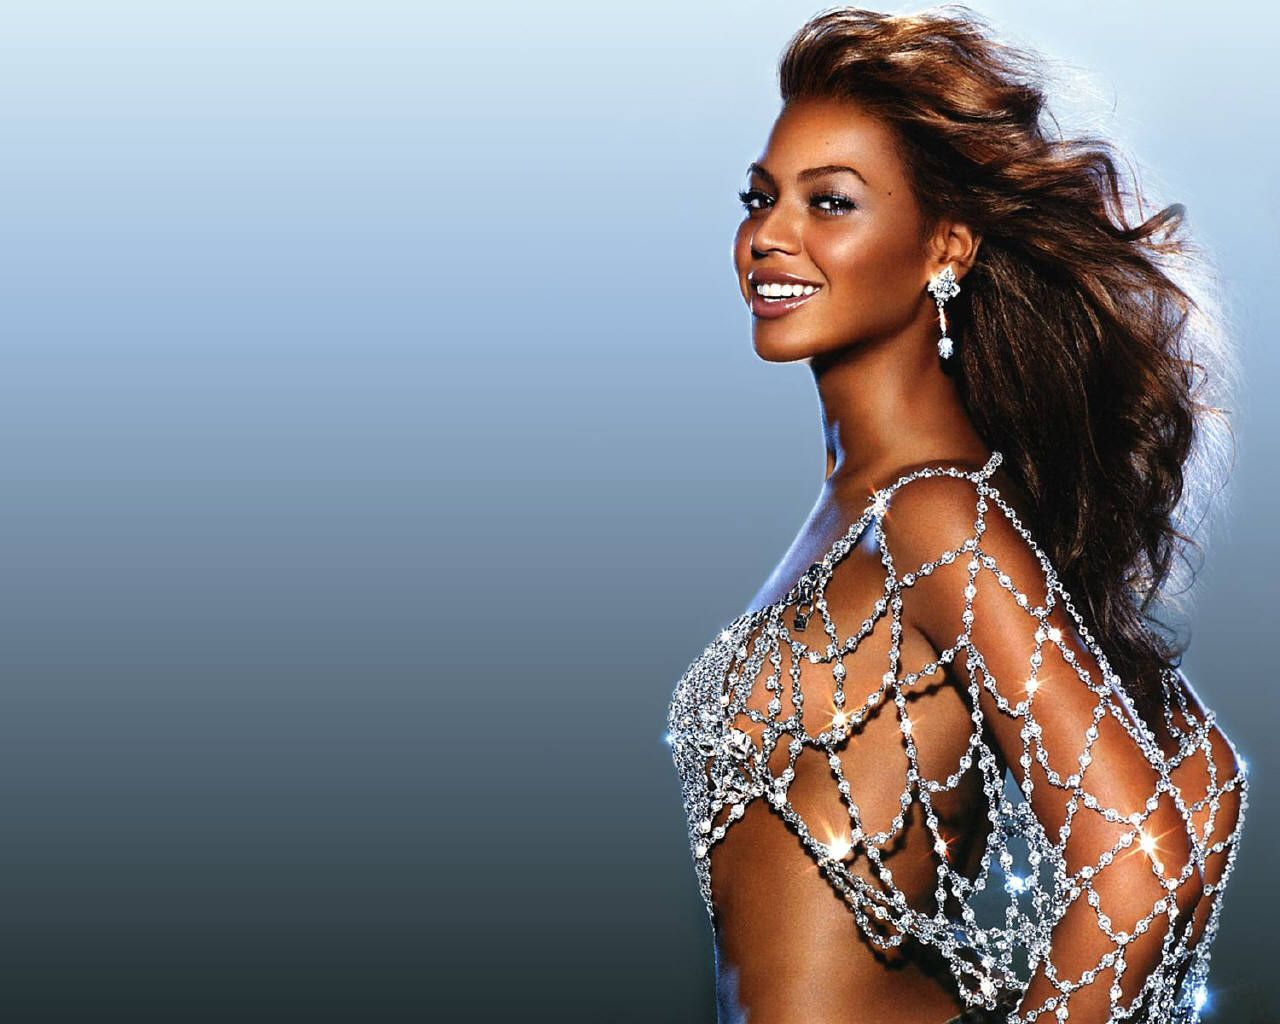 sexy beyonce HD wallpaper Mayco Oil Pinterest Beyonce knowles